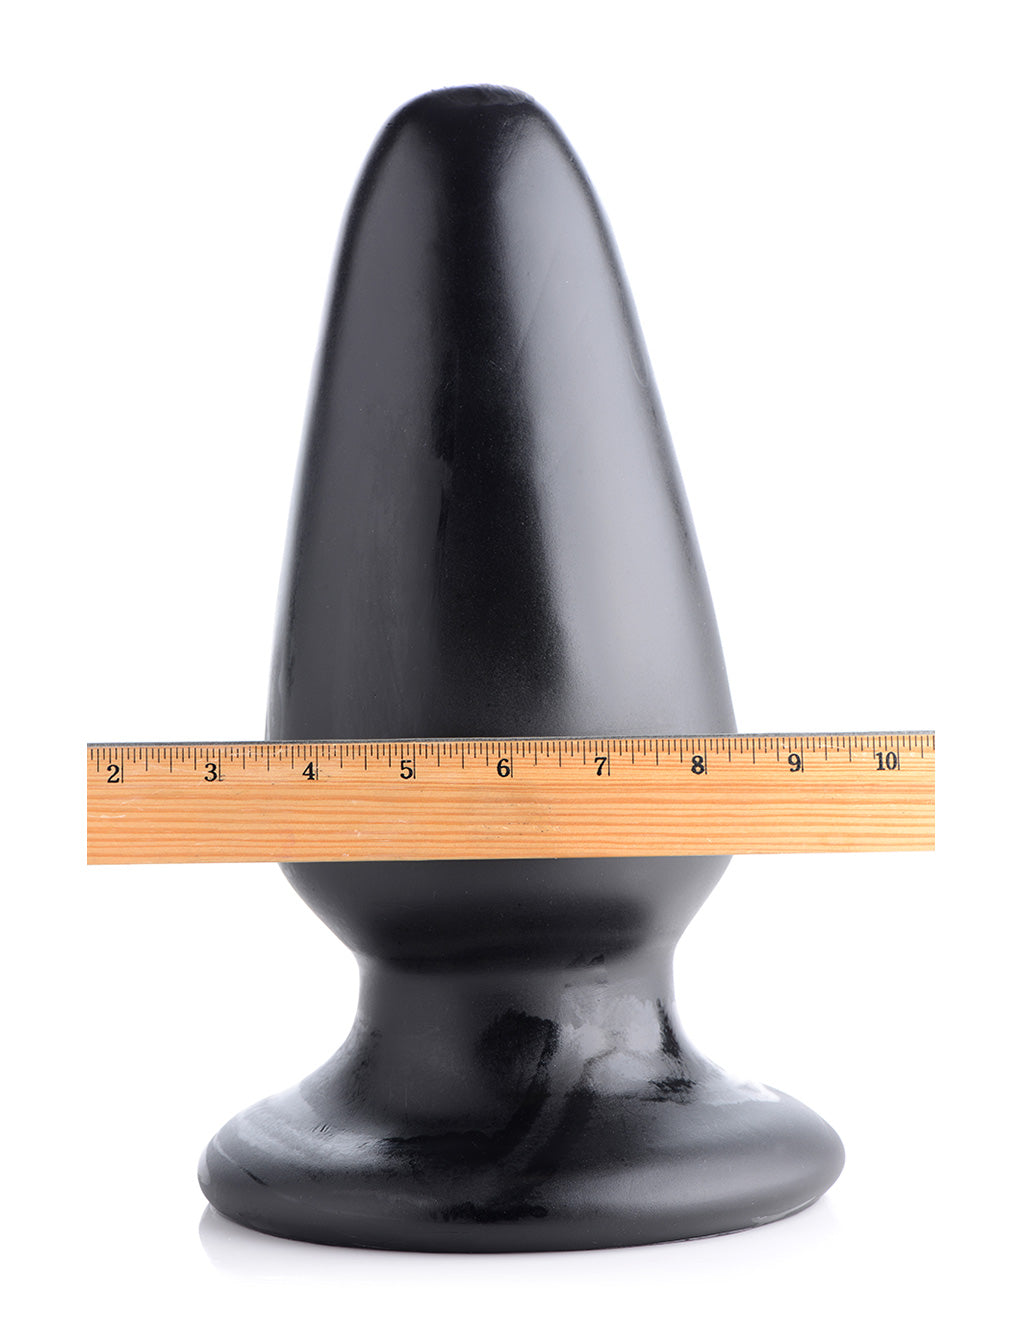 XR Brands MC Gigantor XXXL Tapered Butt Plug Width Measurement